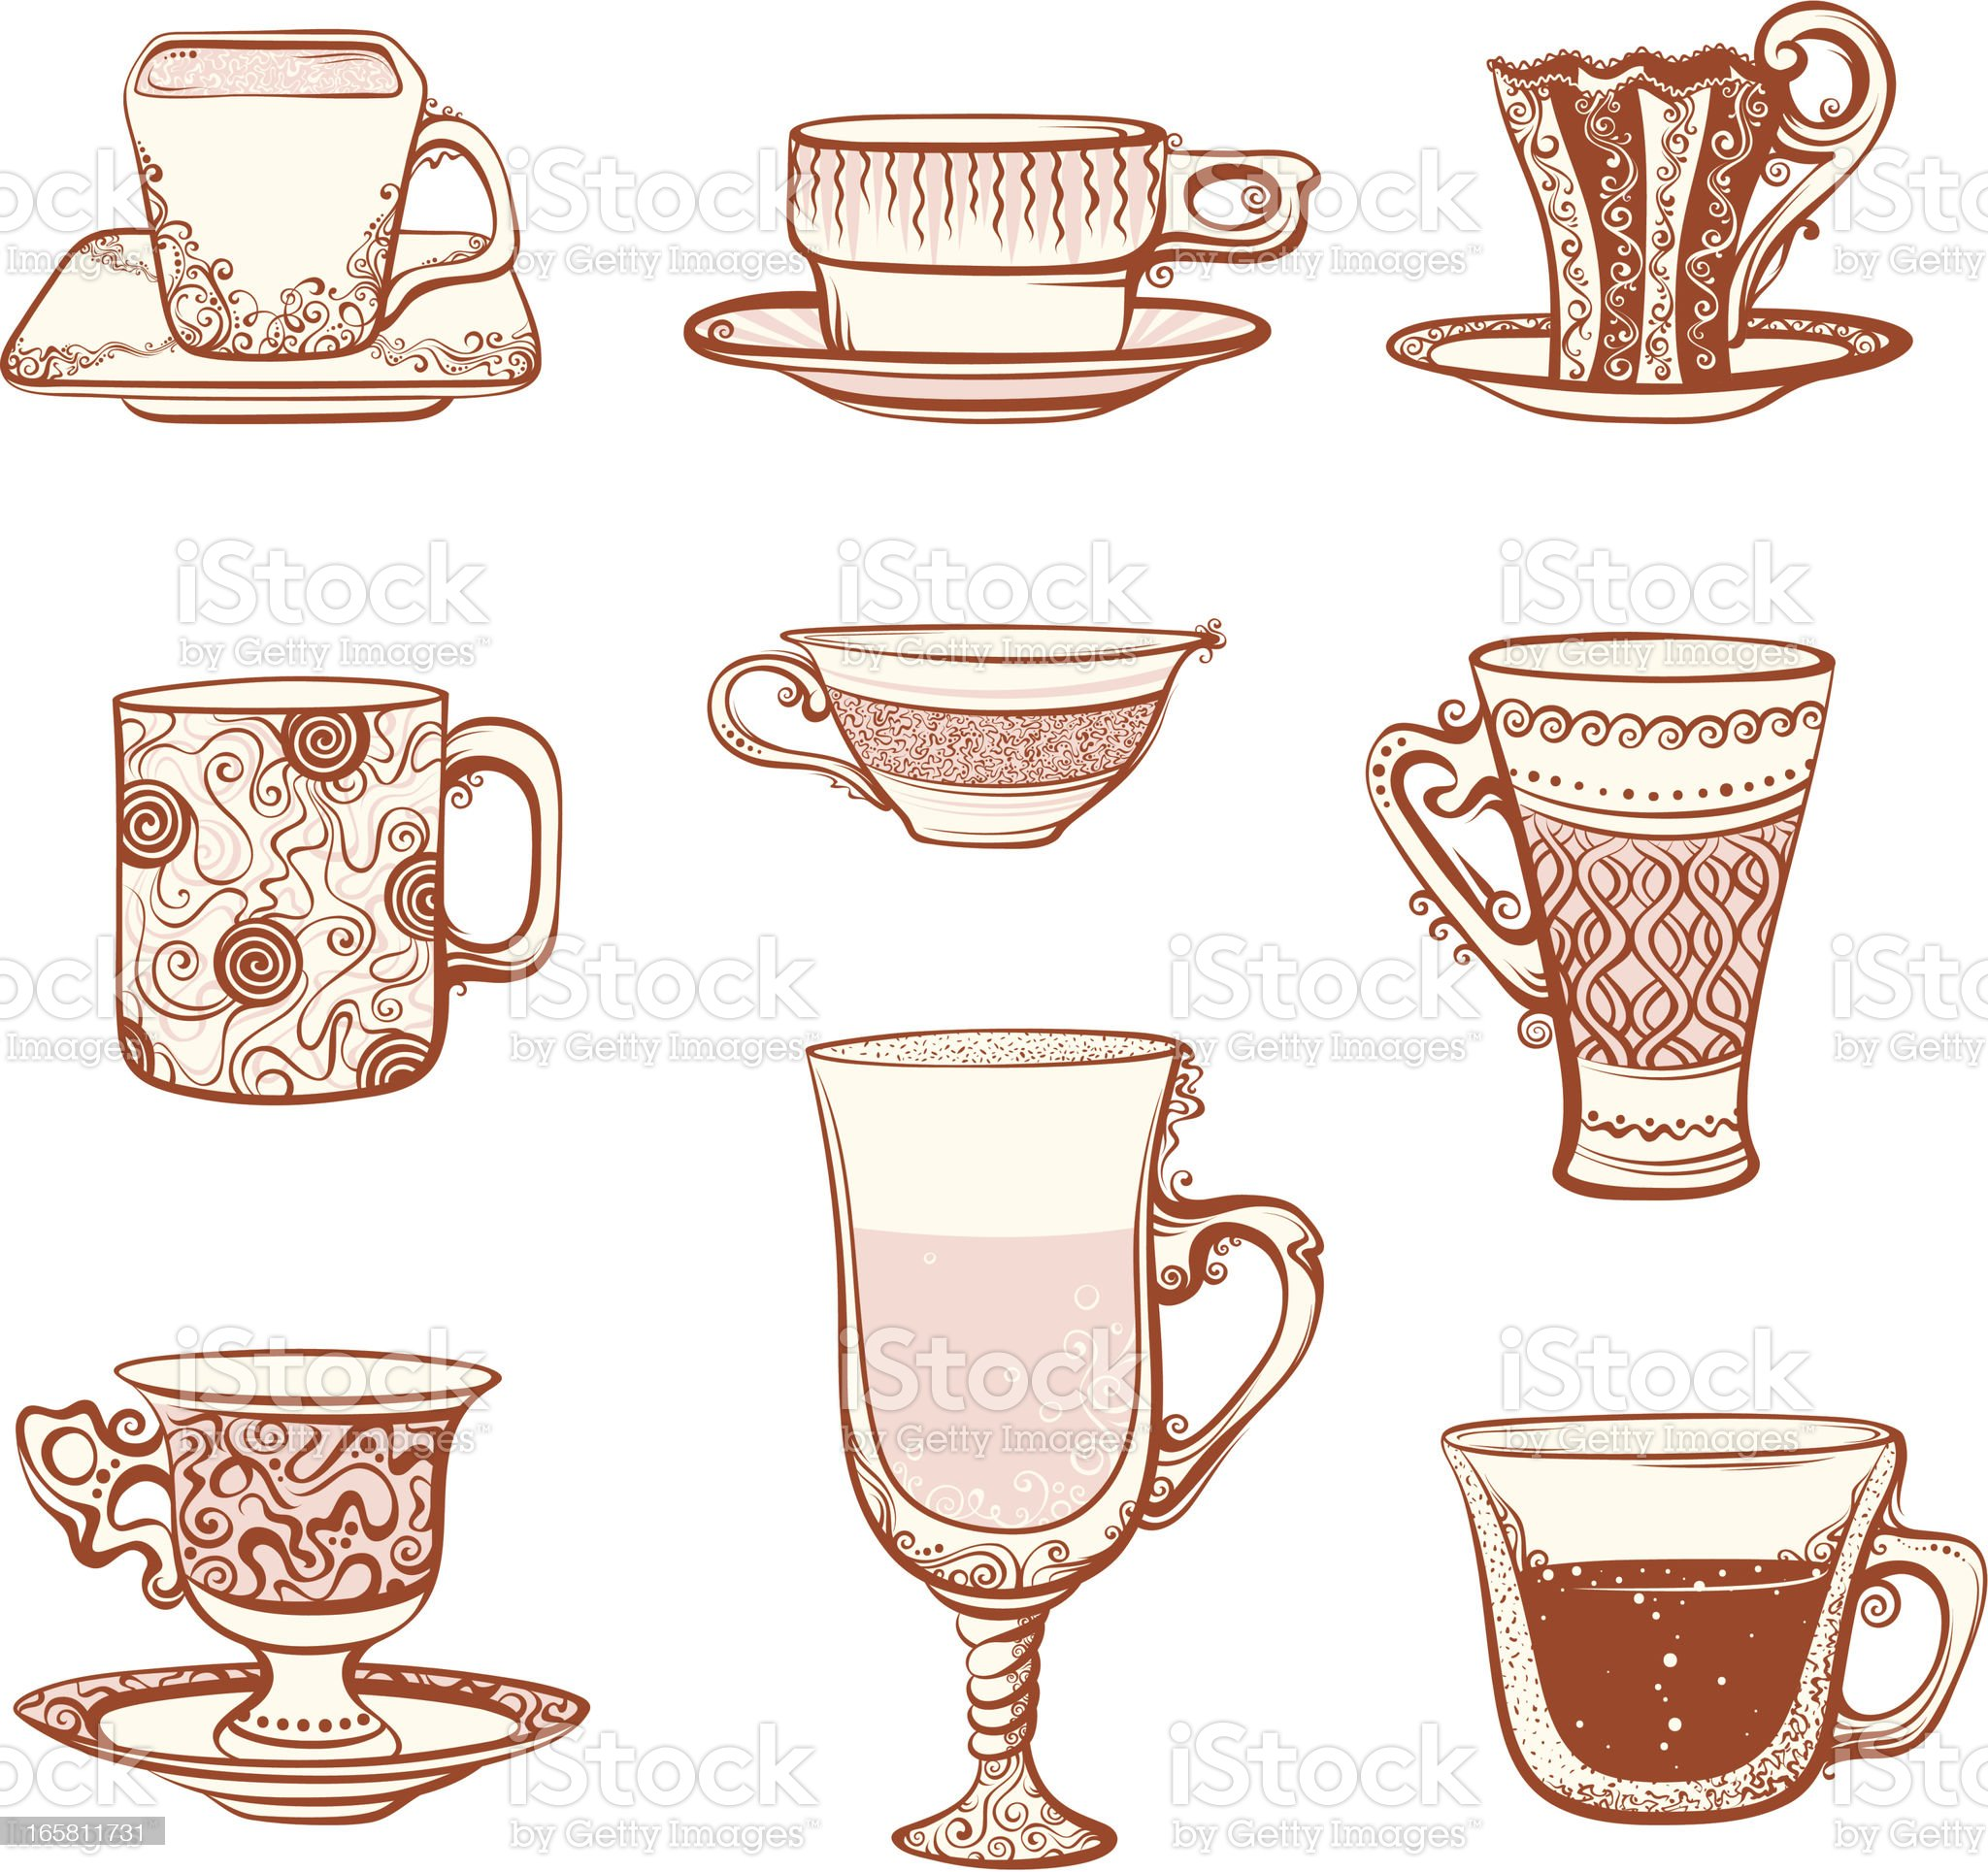 Cups icon set royalty-free stock vector art